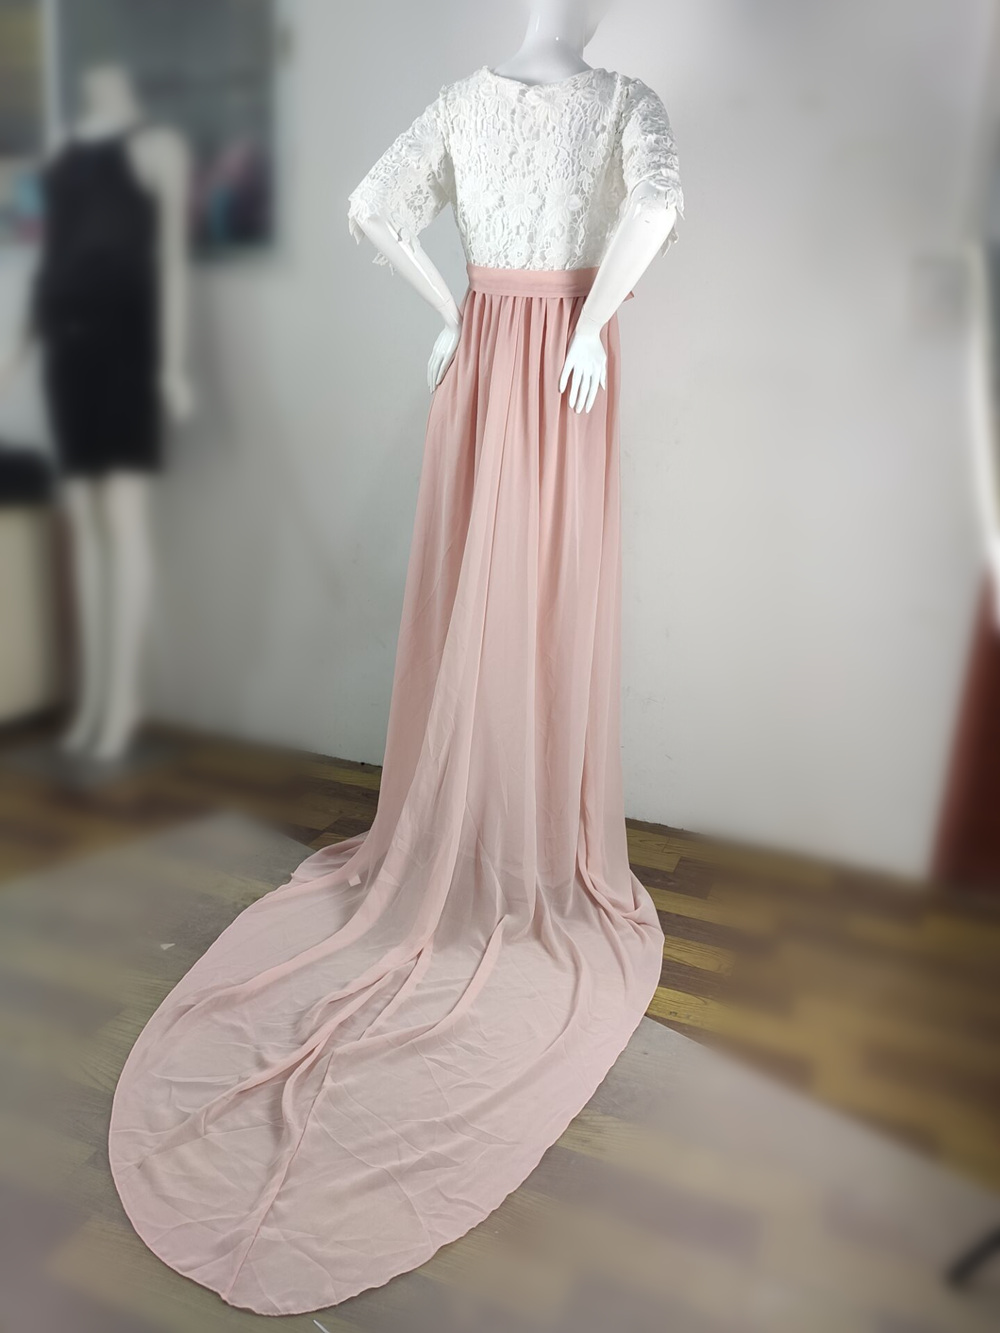 Lace Maternity Dress Photography Long Pregnancy Shoot Dresses Elegence Maxi Gown Photo Prop For Pregnant Women Baby Shower Dress (6)